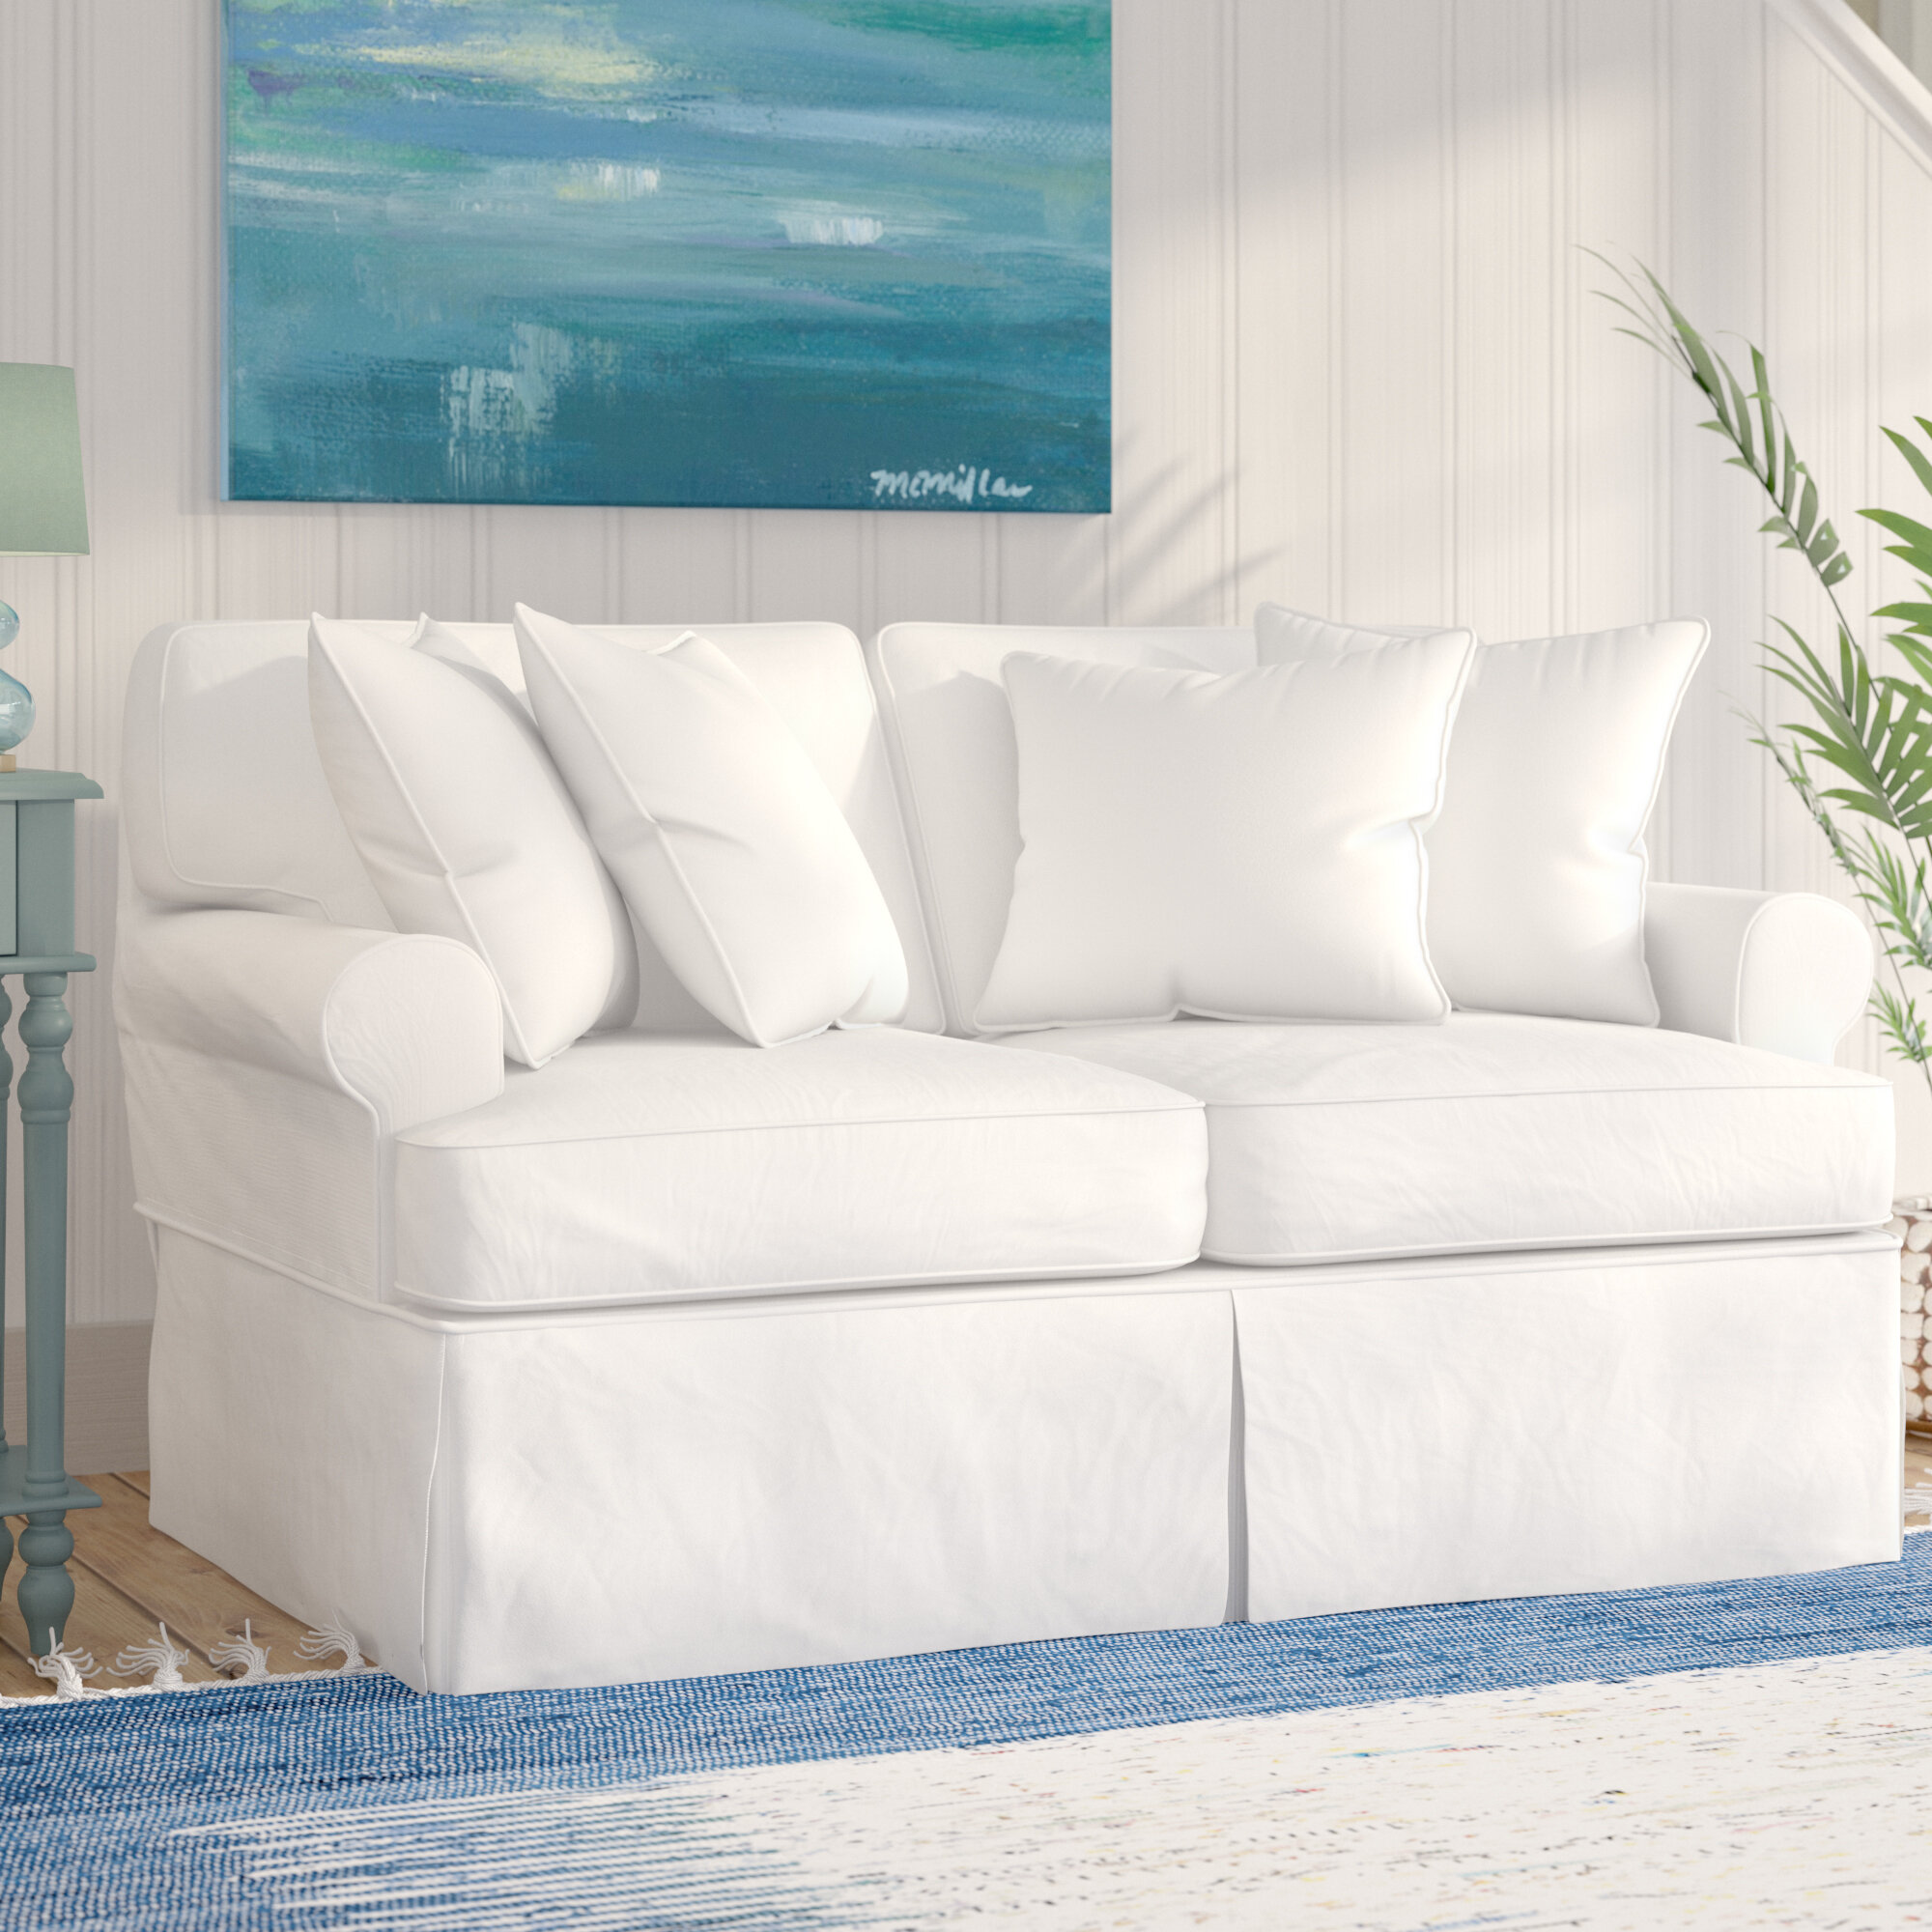 Beachcrest Home Coral Gables T-Cushion Loveseat Slipcover & Reviews ...